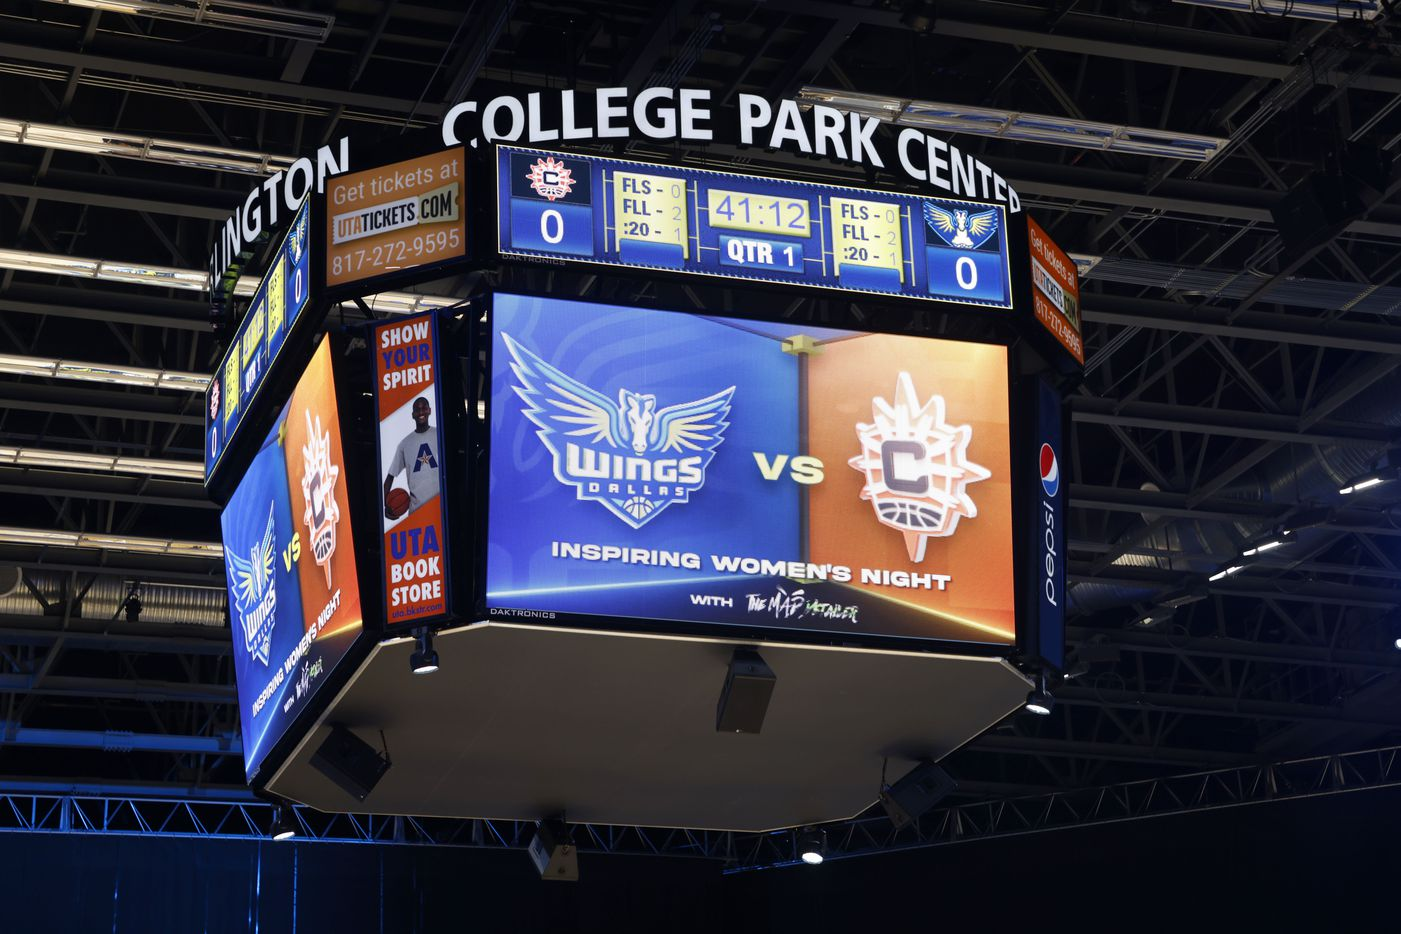 The scoreboard prior to a WNBA basketball game between the Connecticut Sun and the Dallas Wings in Arlington, Texas on Tuesday, Sept. 07, 2021. (Michael Ainsworth/Special Contributor)